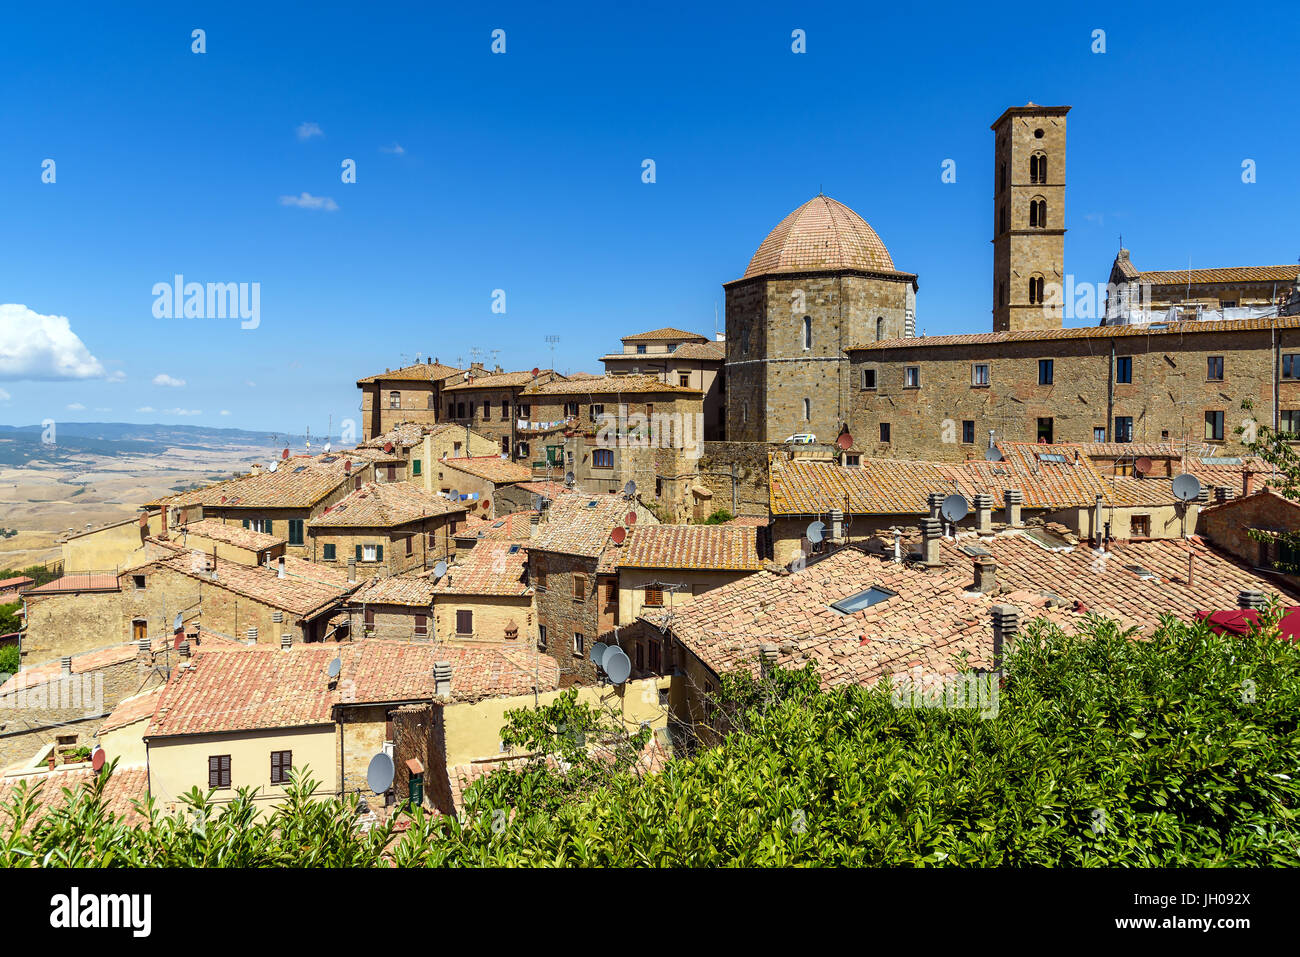 historic village of Volterra, tuscany, italy - Stock Image